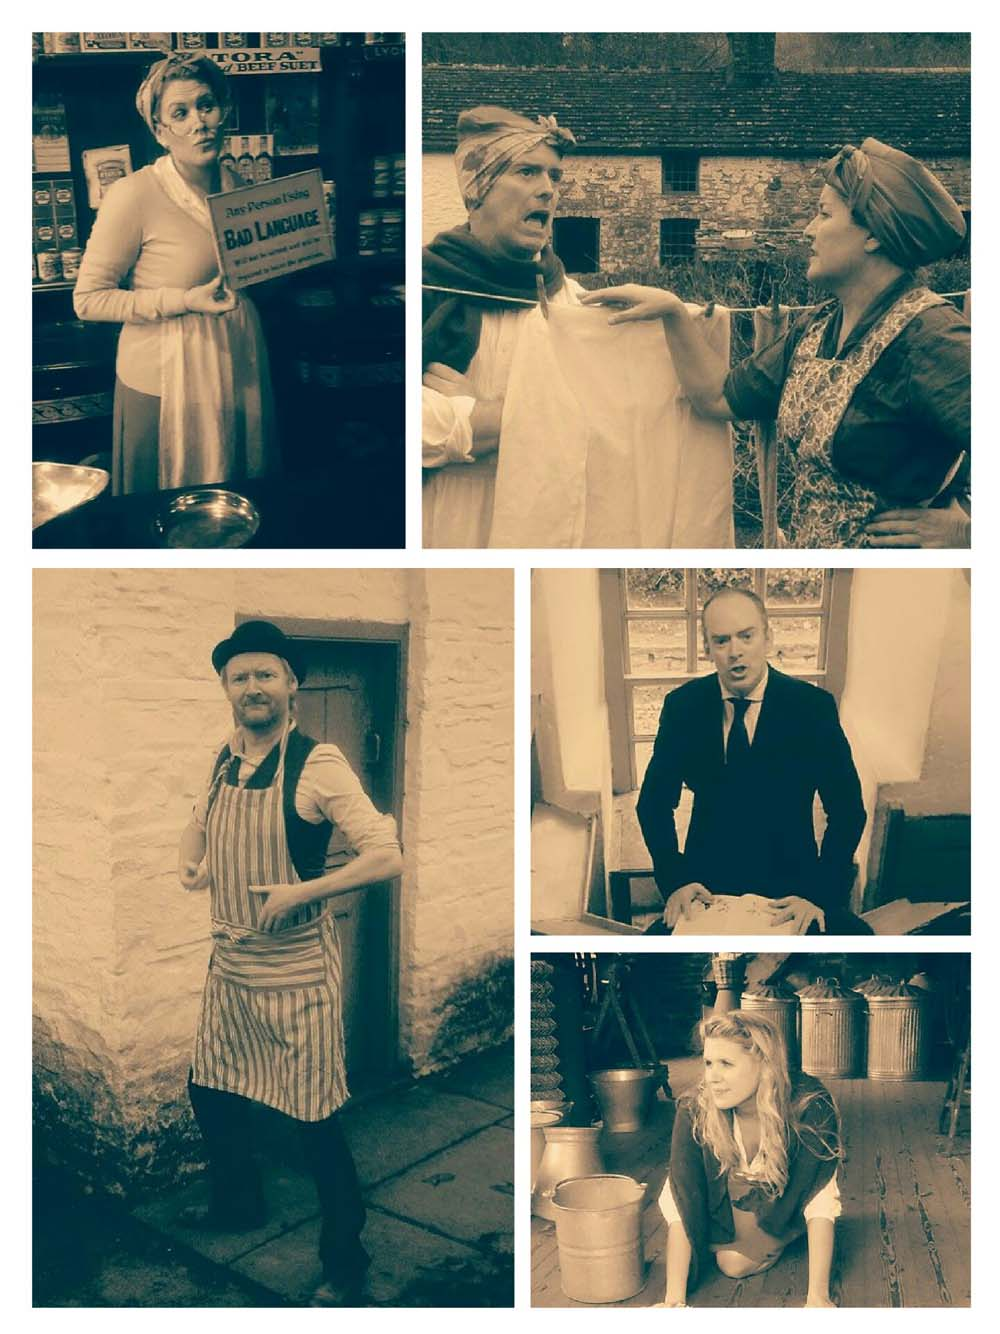 Theatr Silures are aset to bring the characters of Dylan Thomas' classic, Under Milk Wood to life at Caldicot Castle on July 7, 2018